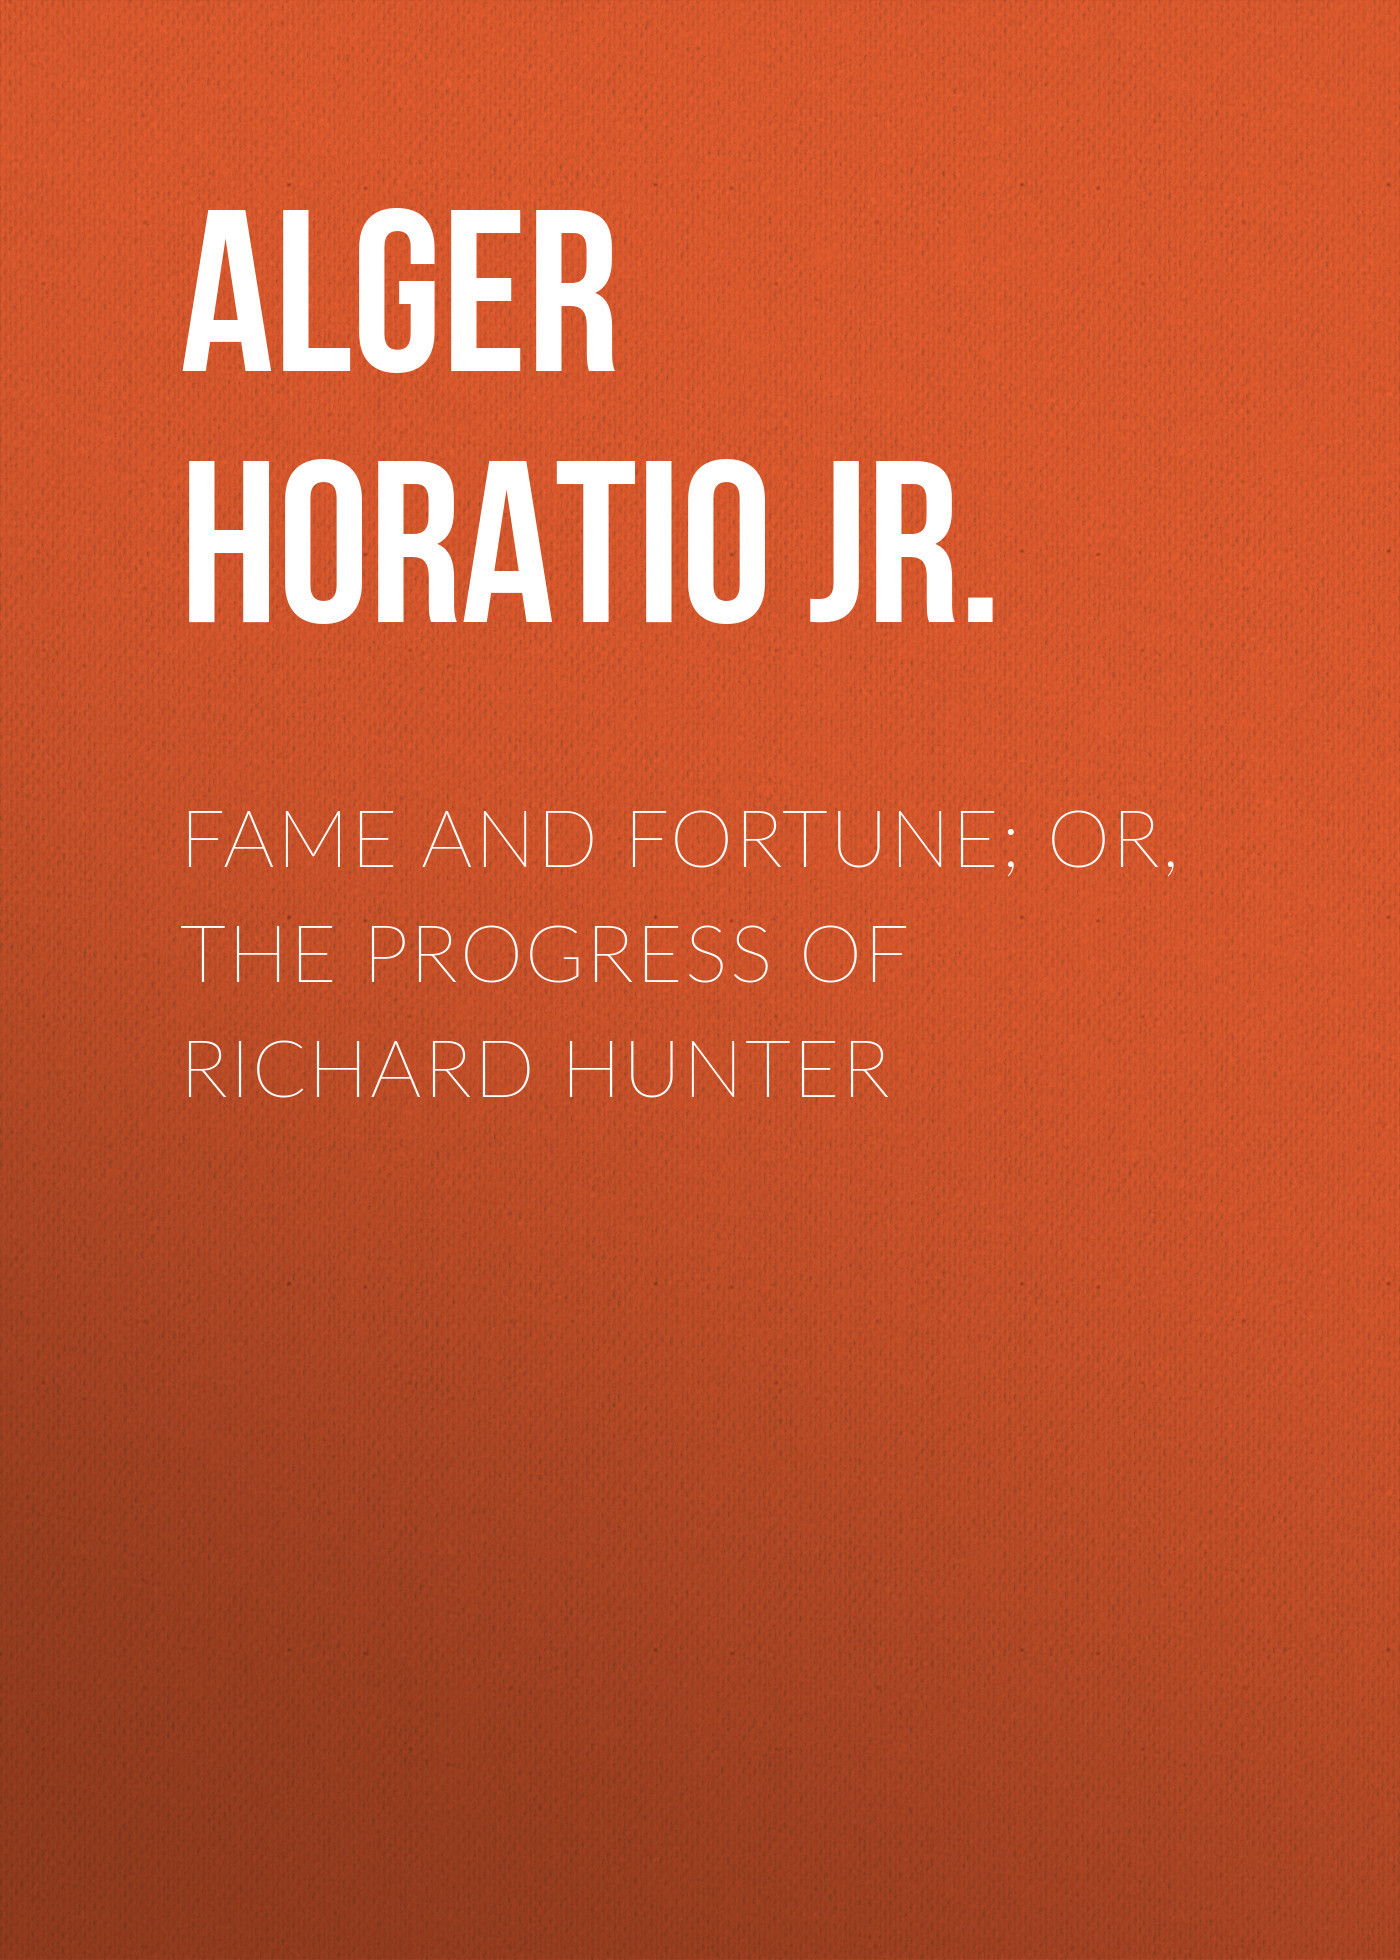 Alger Horatio Jr. Fame and Fortune; or, The Progress of Richard Hunter росмэн книжка картинки невидимки тачки 24785